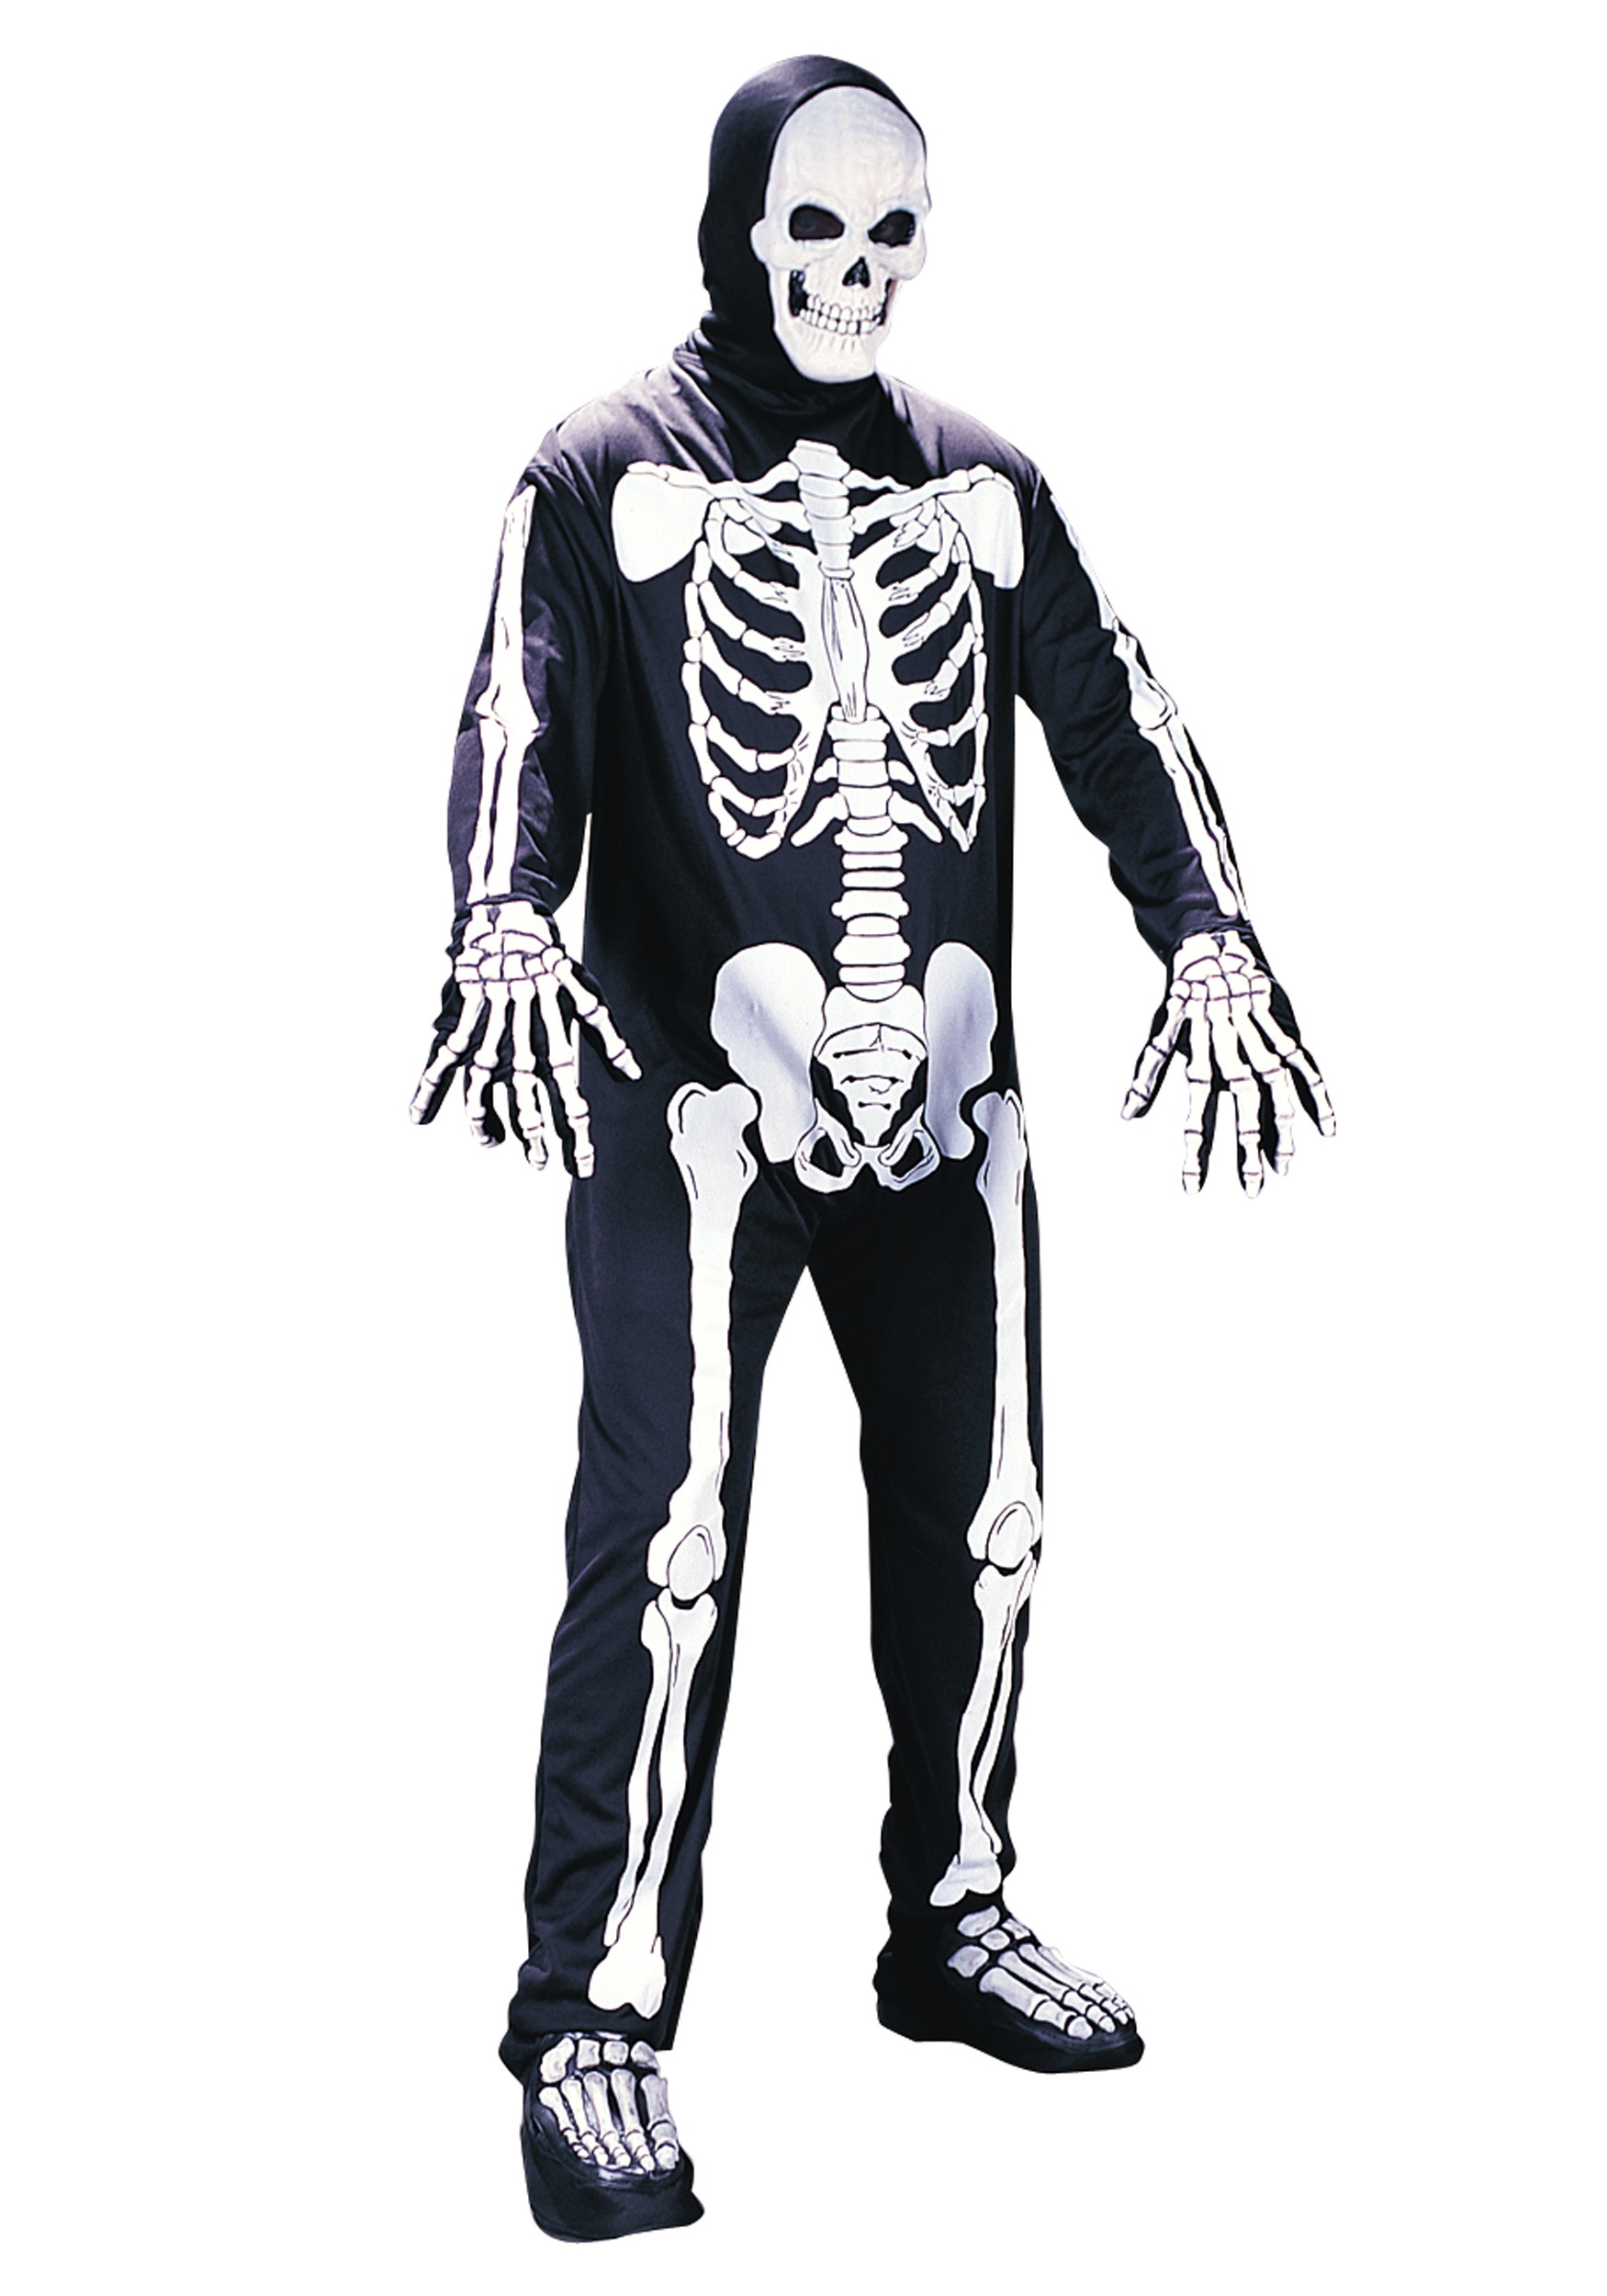 Traditional Costume clipart halloween skull Costume Adult Skeleton Scary Ideas